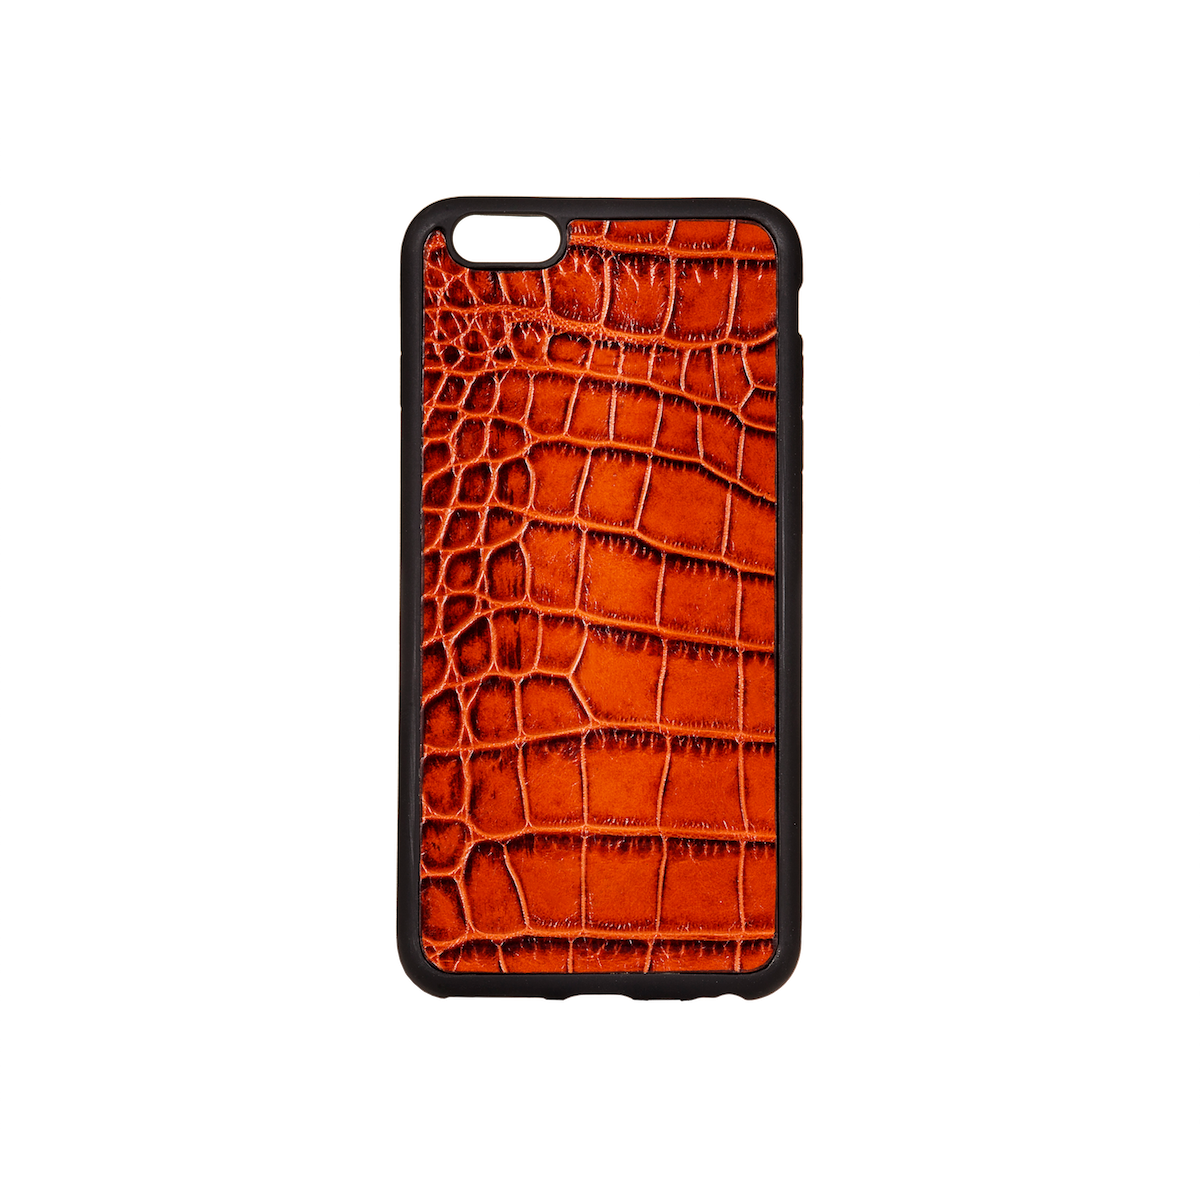 Iphone 6 Plus Case, Tan Croco Leather, MAISON JMK-VONMEL Luxe Gifts